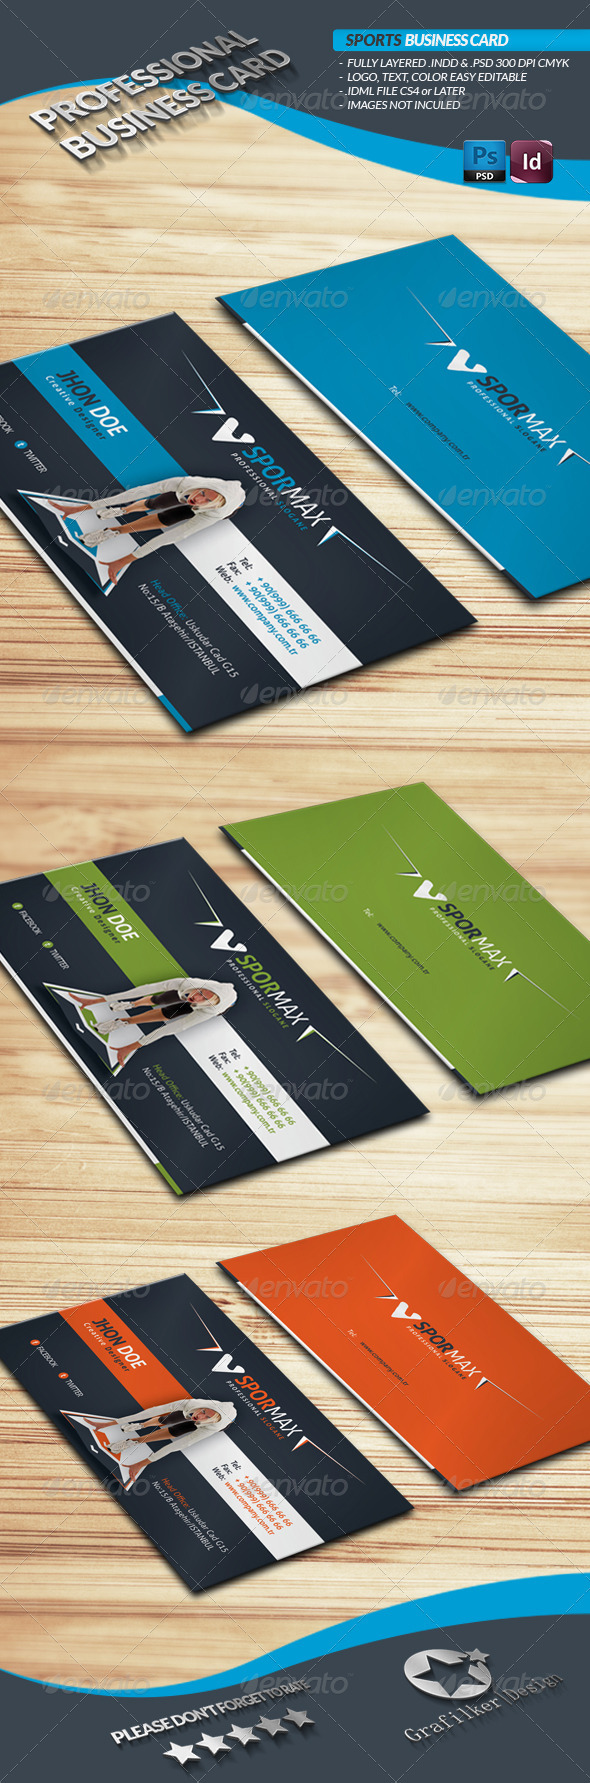 GraphicRiver Sports Business Card 3930791